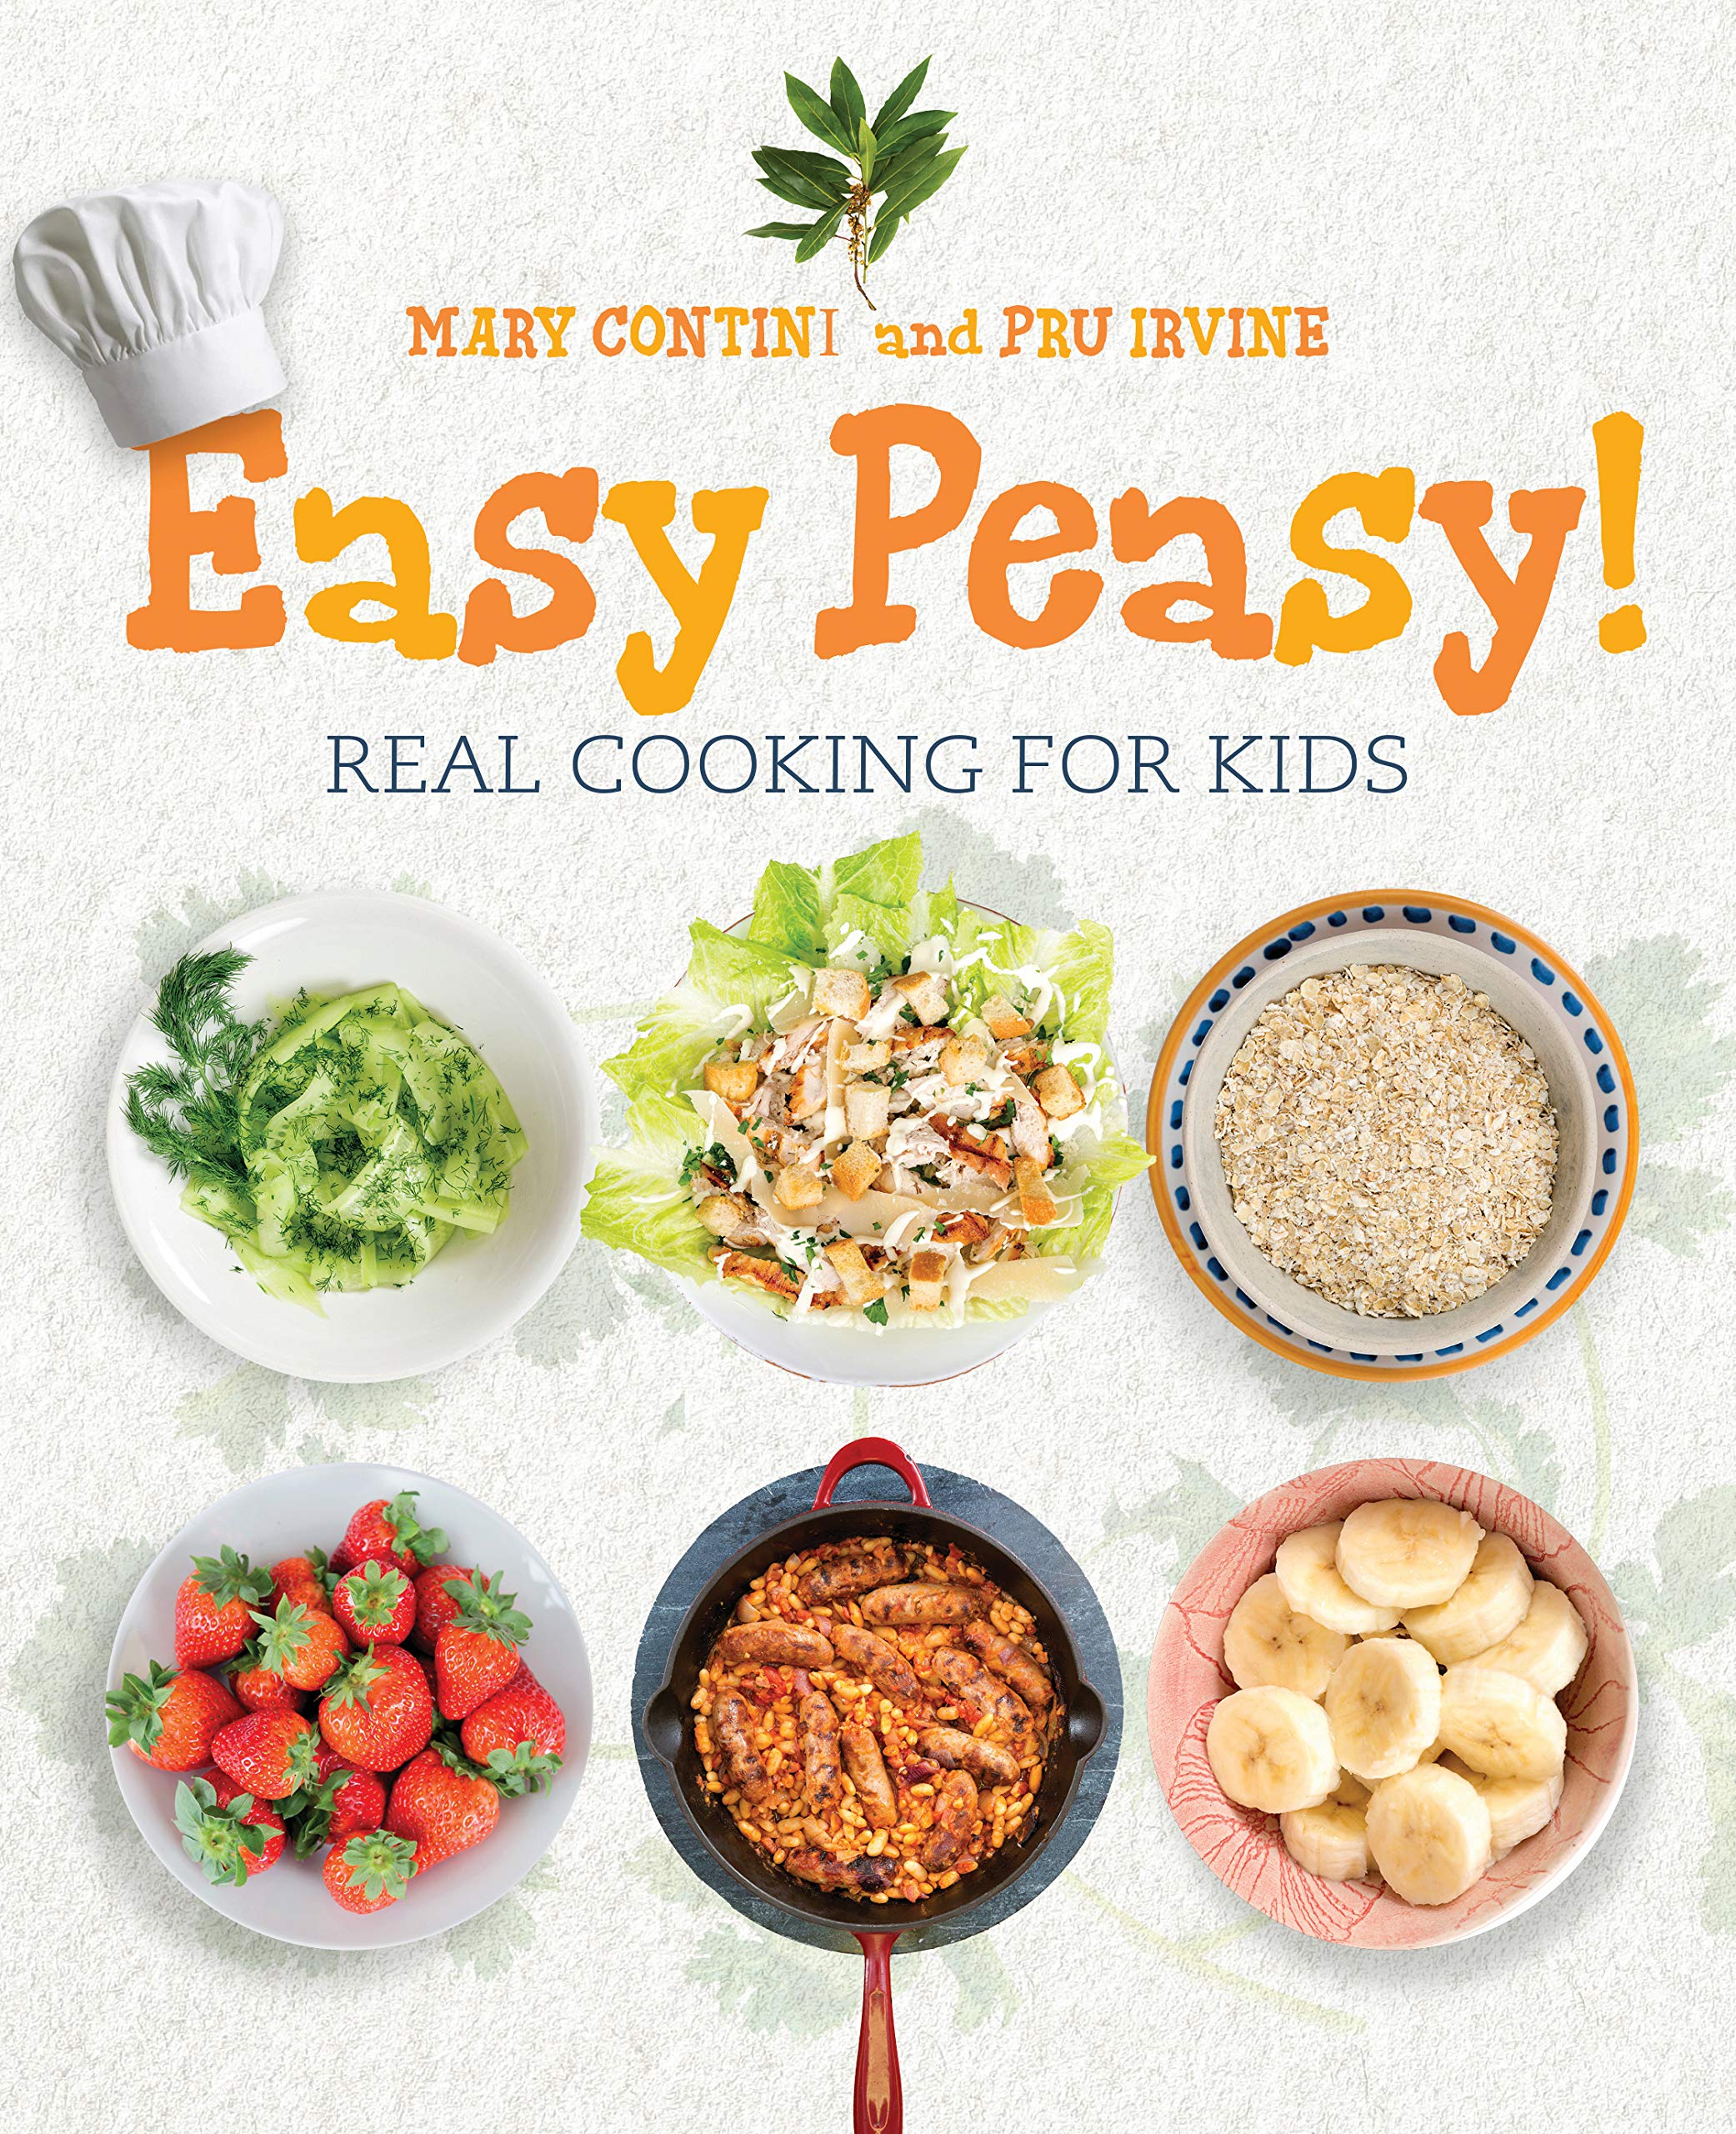 Image for Easy Peasy!: Real Cooking For Kids